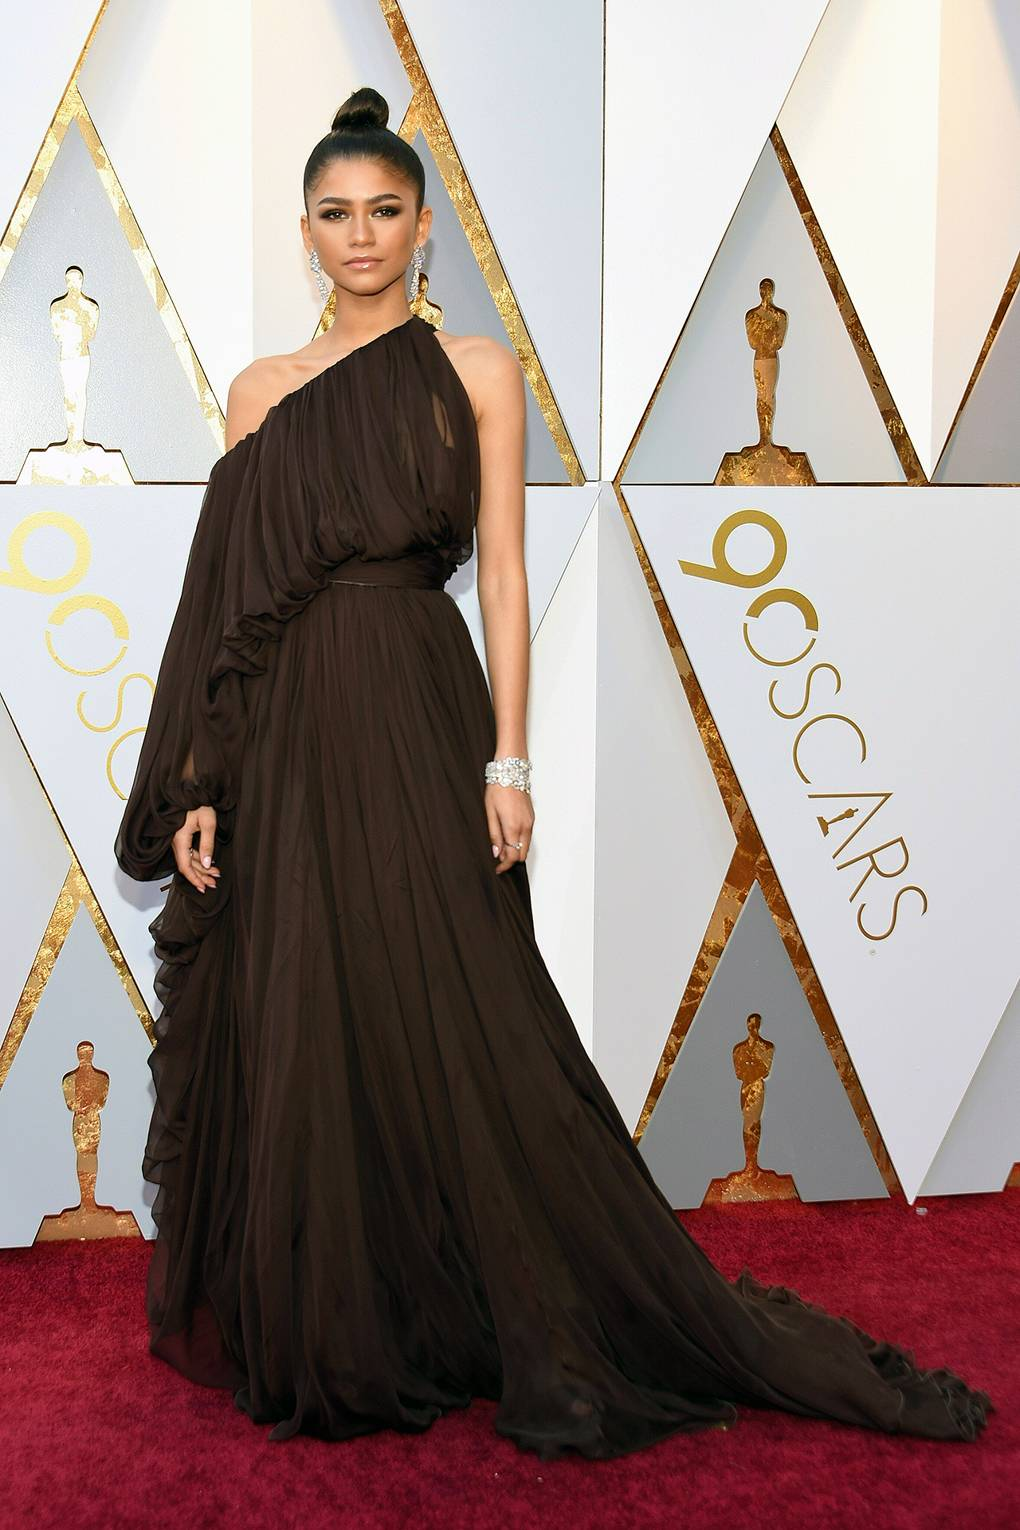 Oscars 2018 Red Carpet Dresses: Every Stunning Gown You Need To See ...